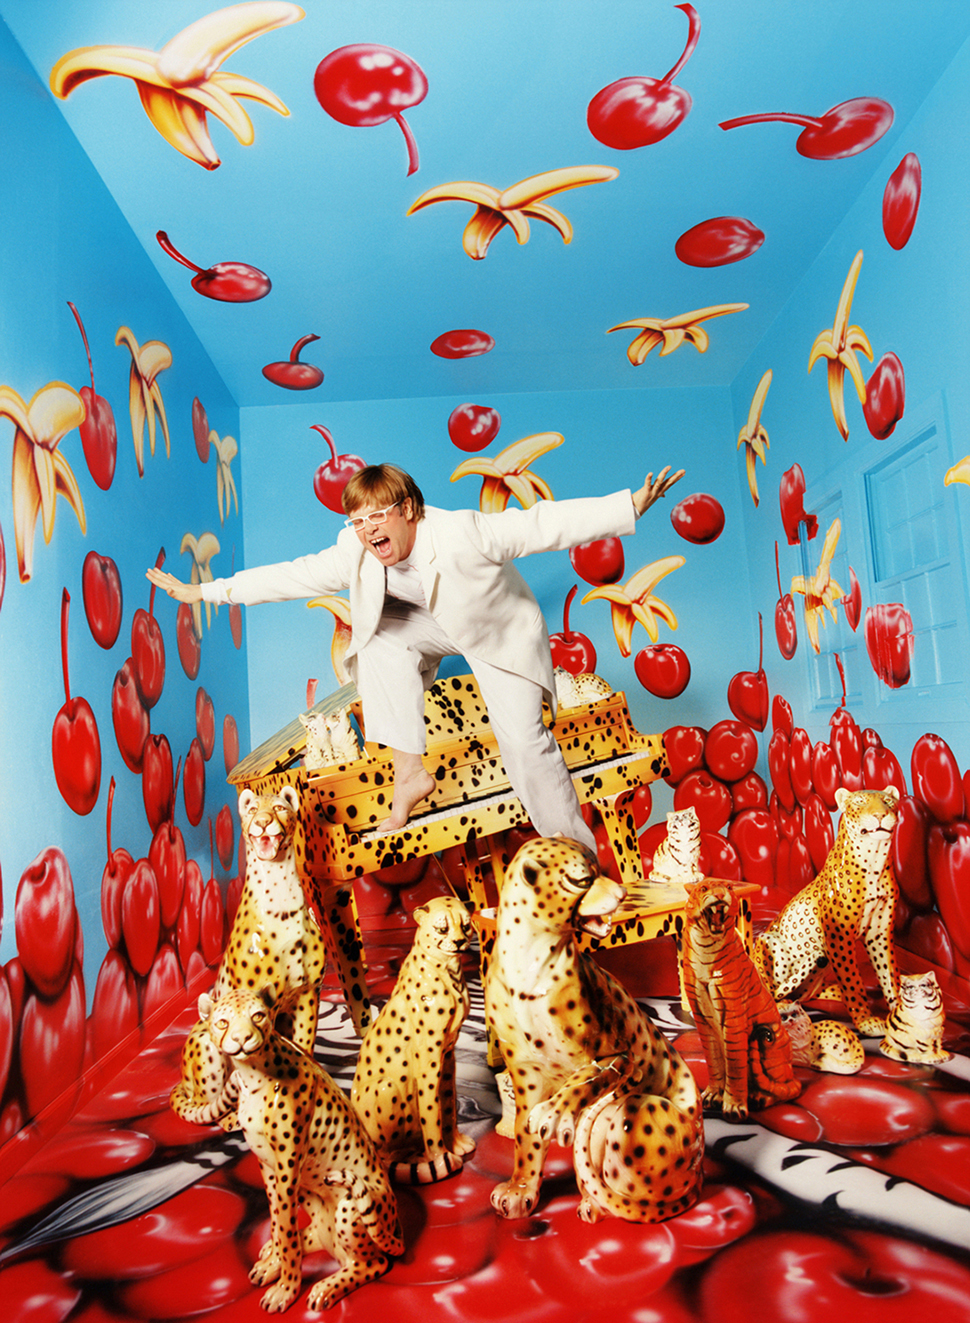 데이비드 라샤펠, Elton John Never, Enough, Never Enough; New York, 1997 ⓒ David LaChapelle